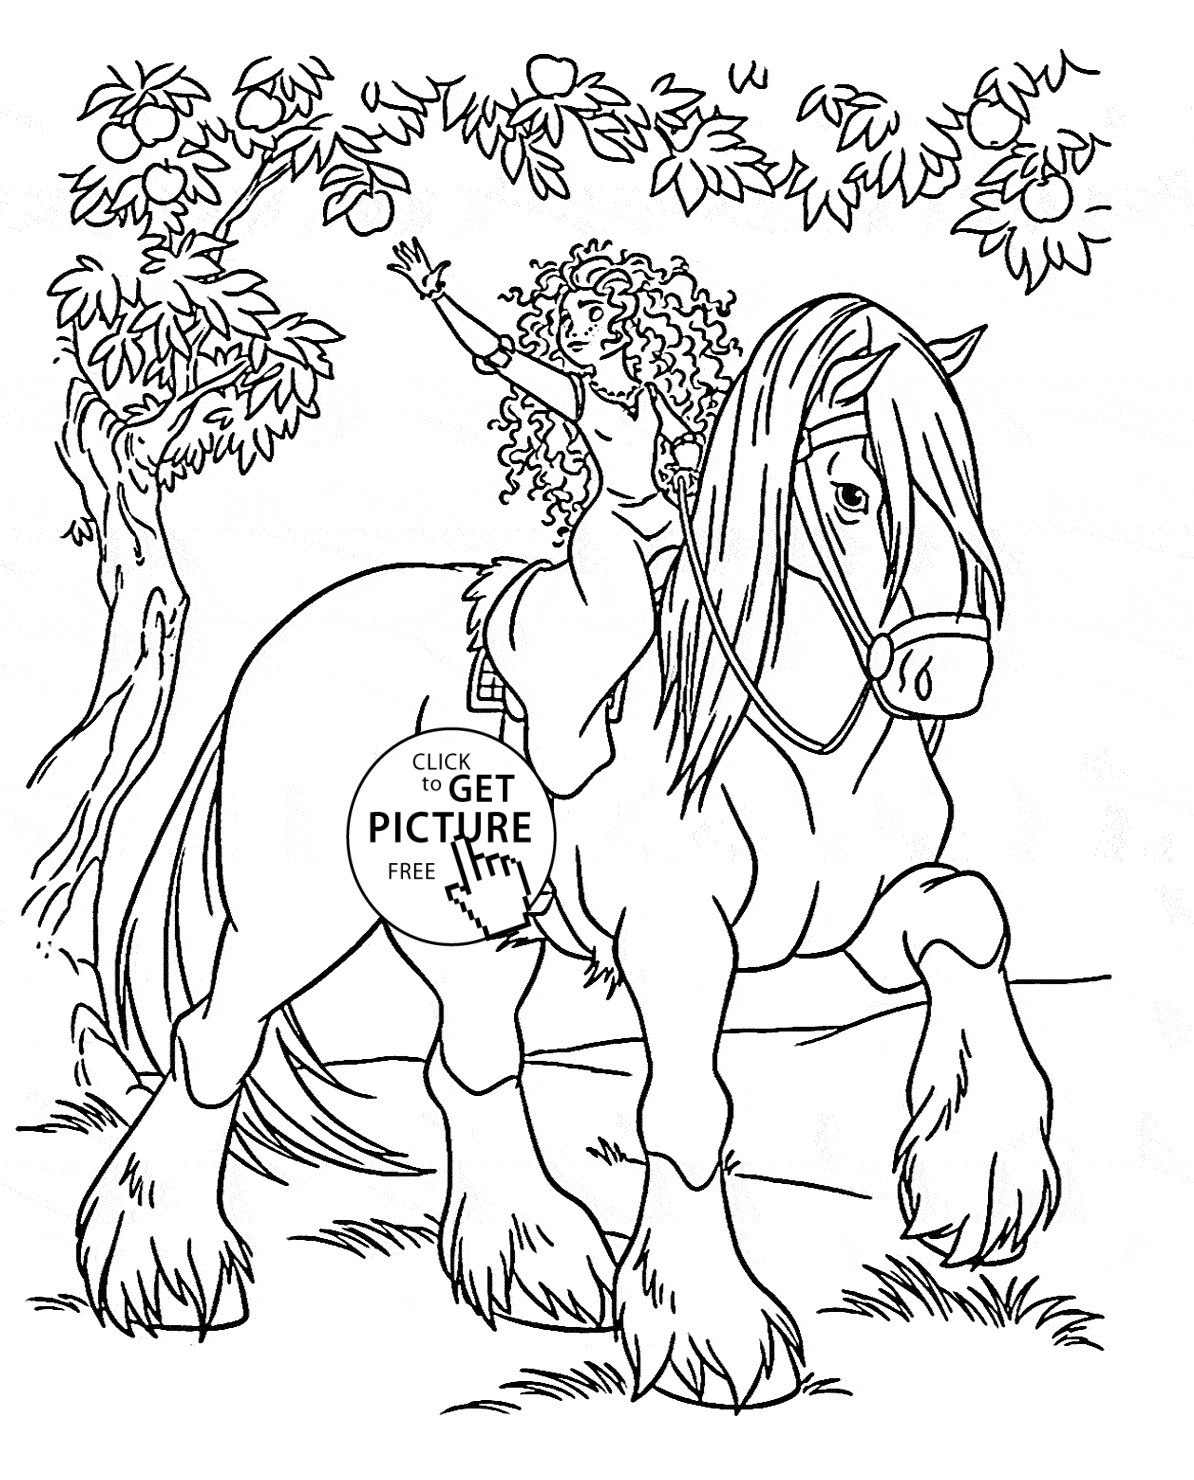 princess riding a horse coloring pages horse coloring pages for girls at getcoloringscom free princess horse coloring pages riding a